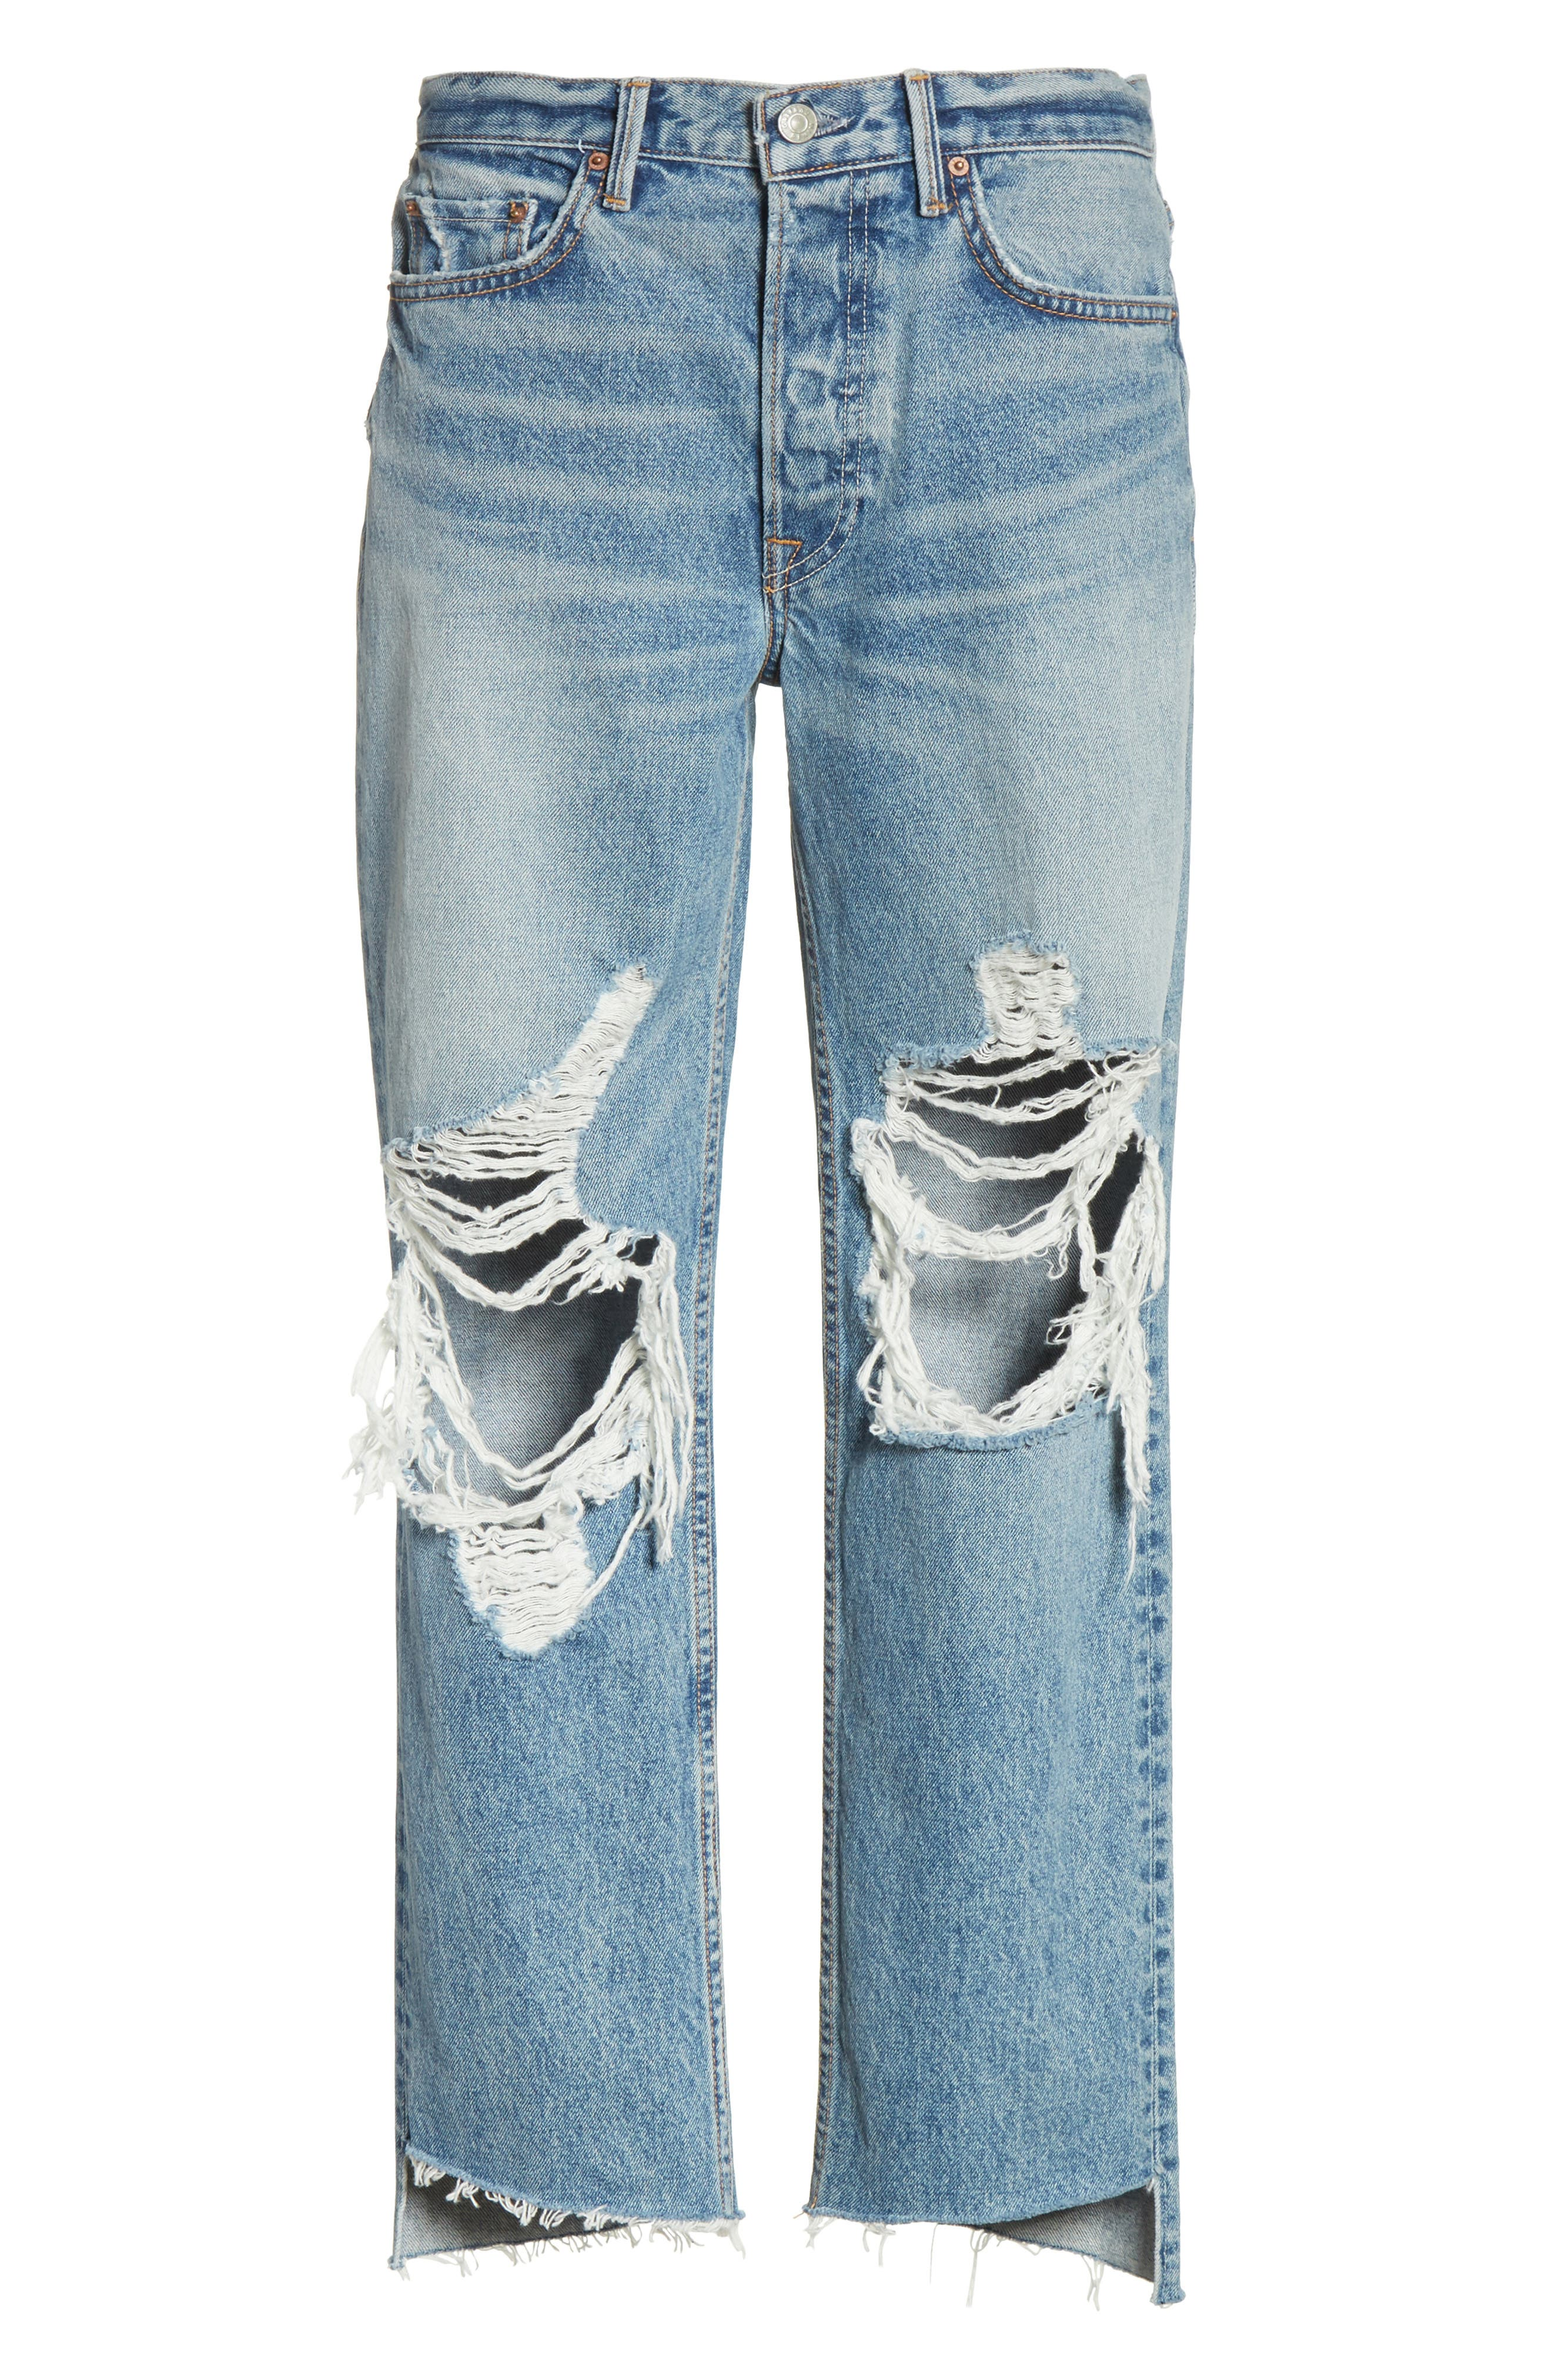 Helena Ripped Rigid High Waist Straight Jeans,                             Alternate thumbnail 7, color,                             487